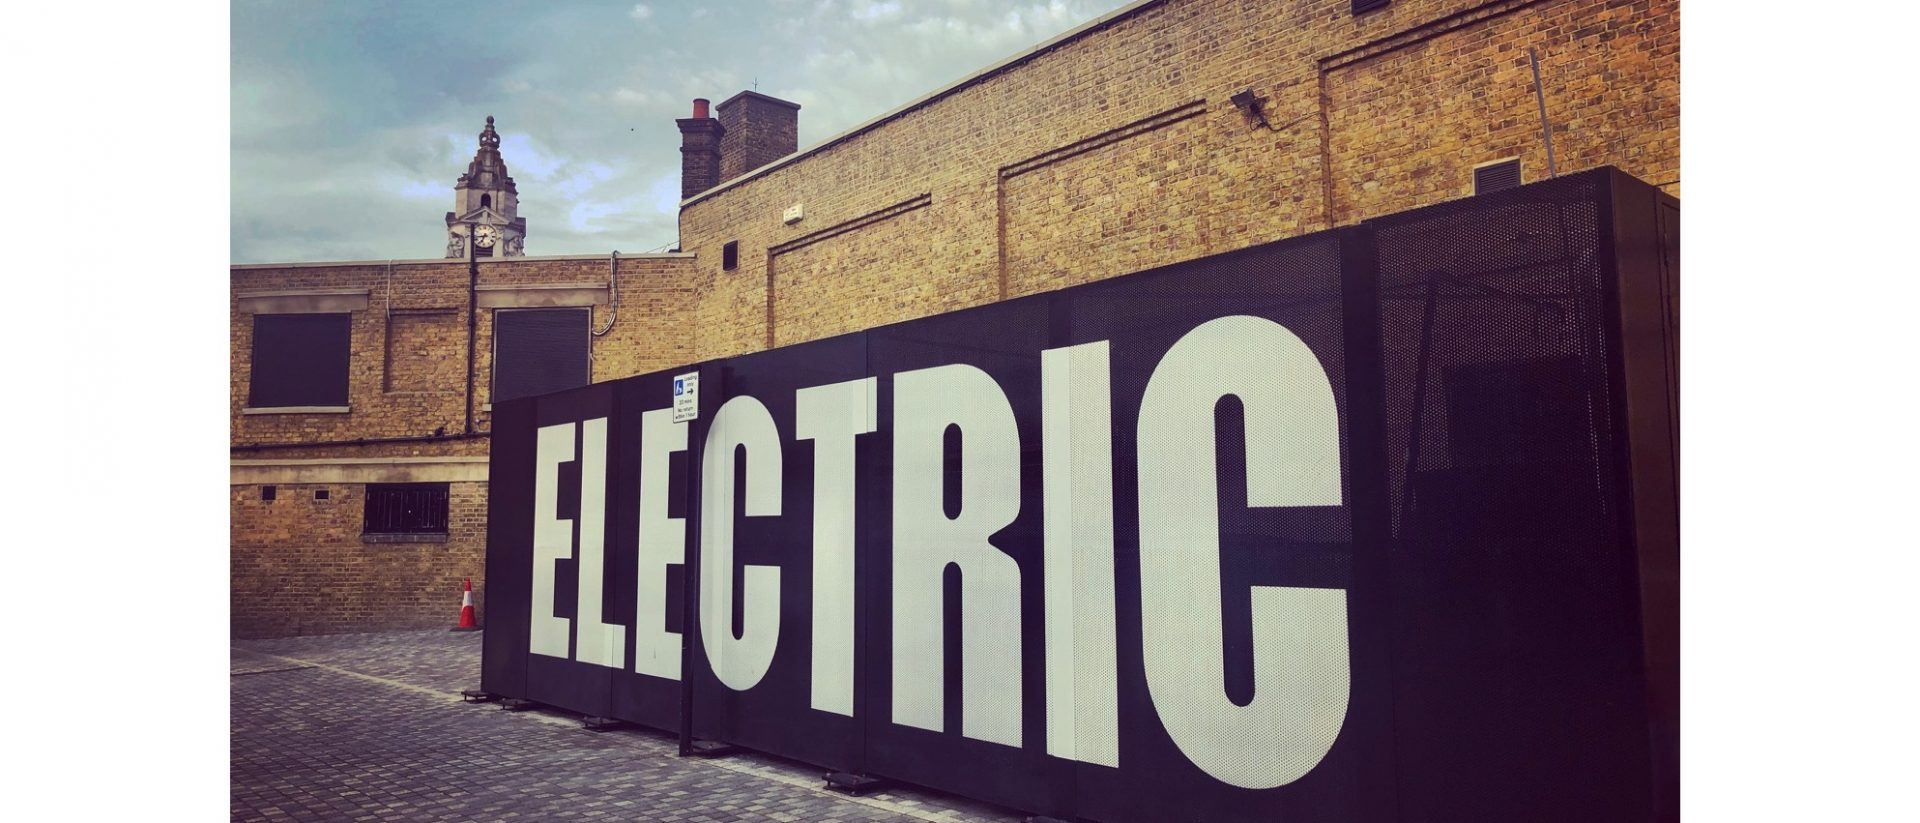 EV Clicks Free to USE electric wide